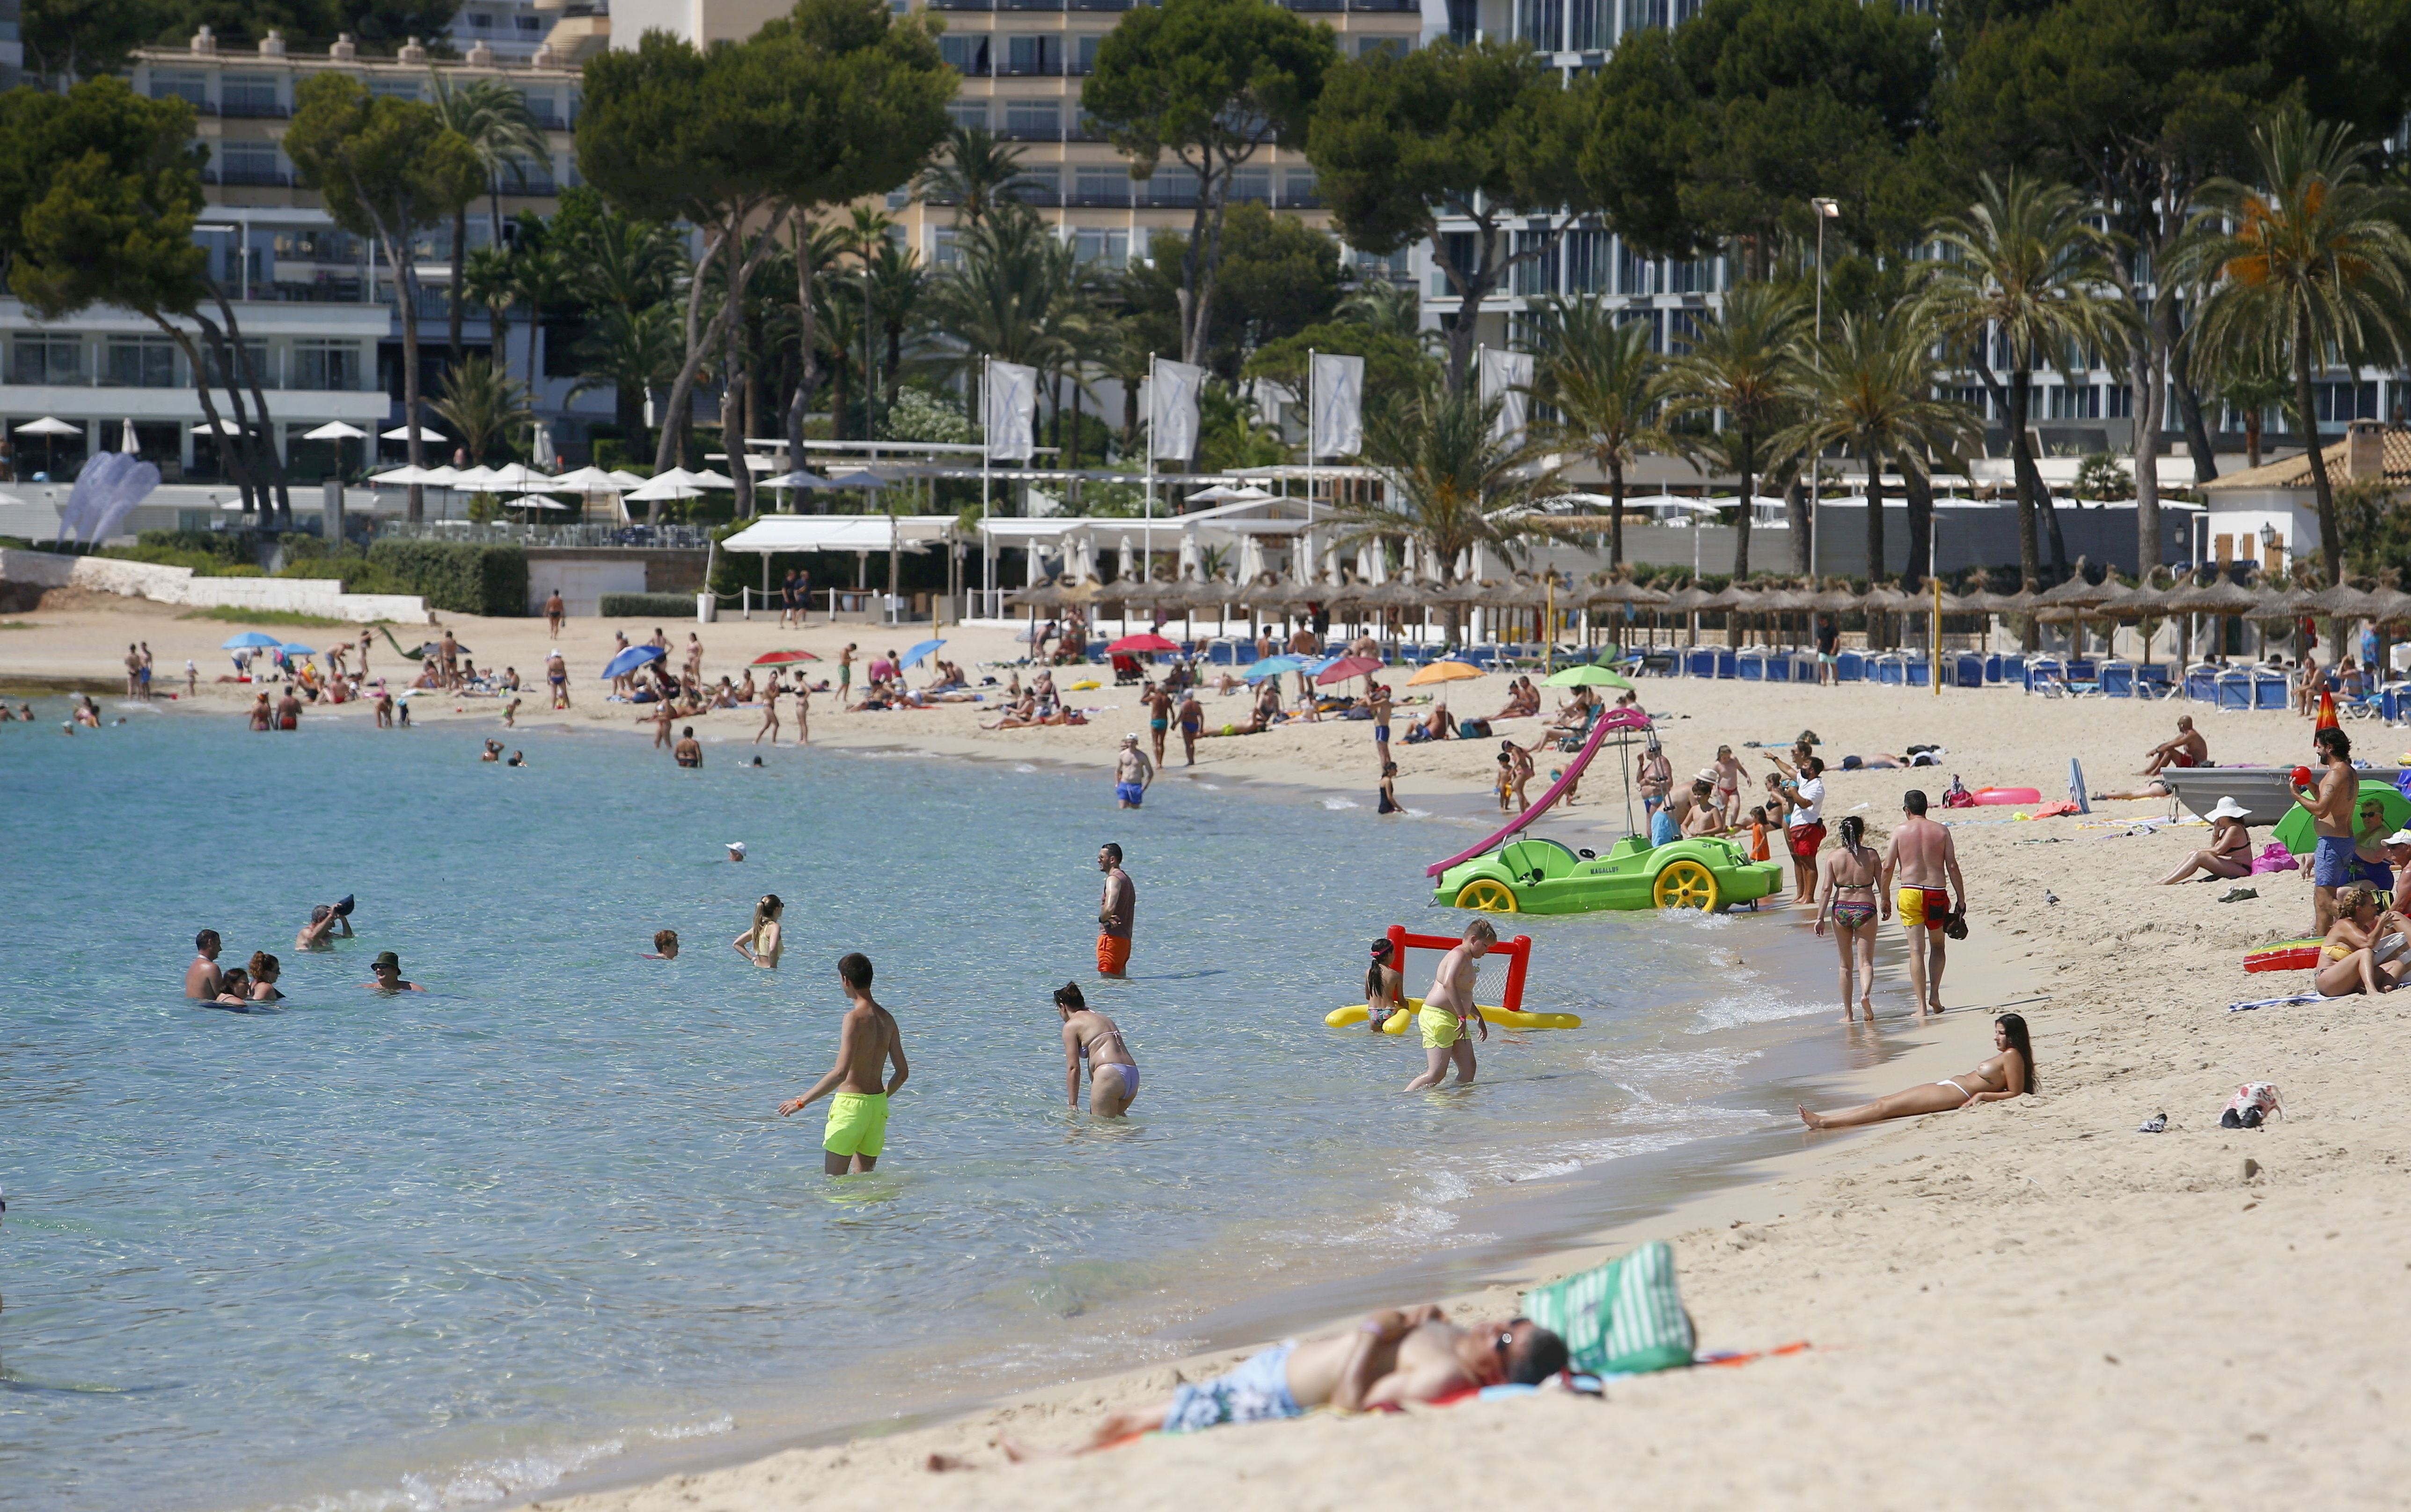 People enjoy themselves at Magaluf beach in Mallorca as British tourists are expected to resume travels to the area starting from June 30th, Spain, June 29, 2021. REUTERS/Enrique Calvo/File Photo